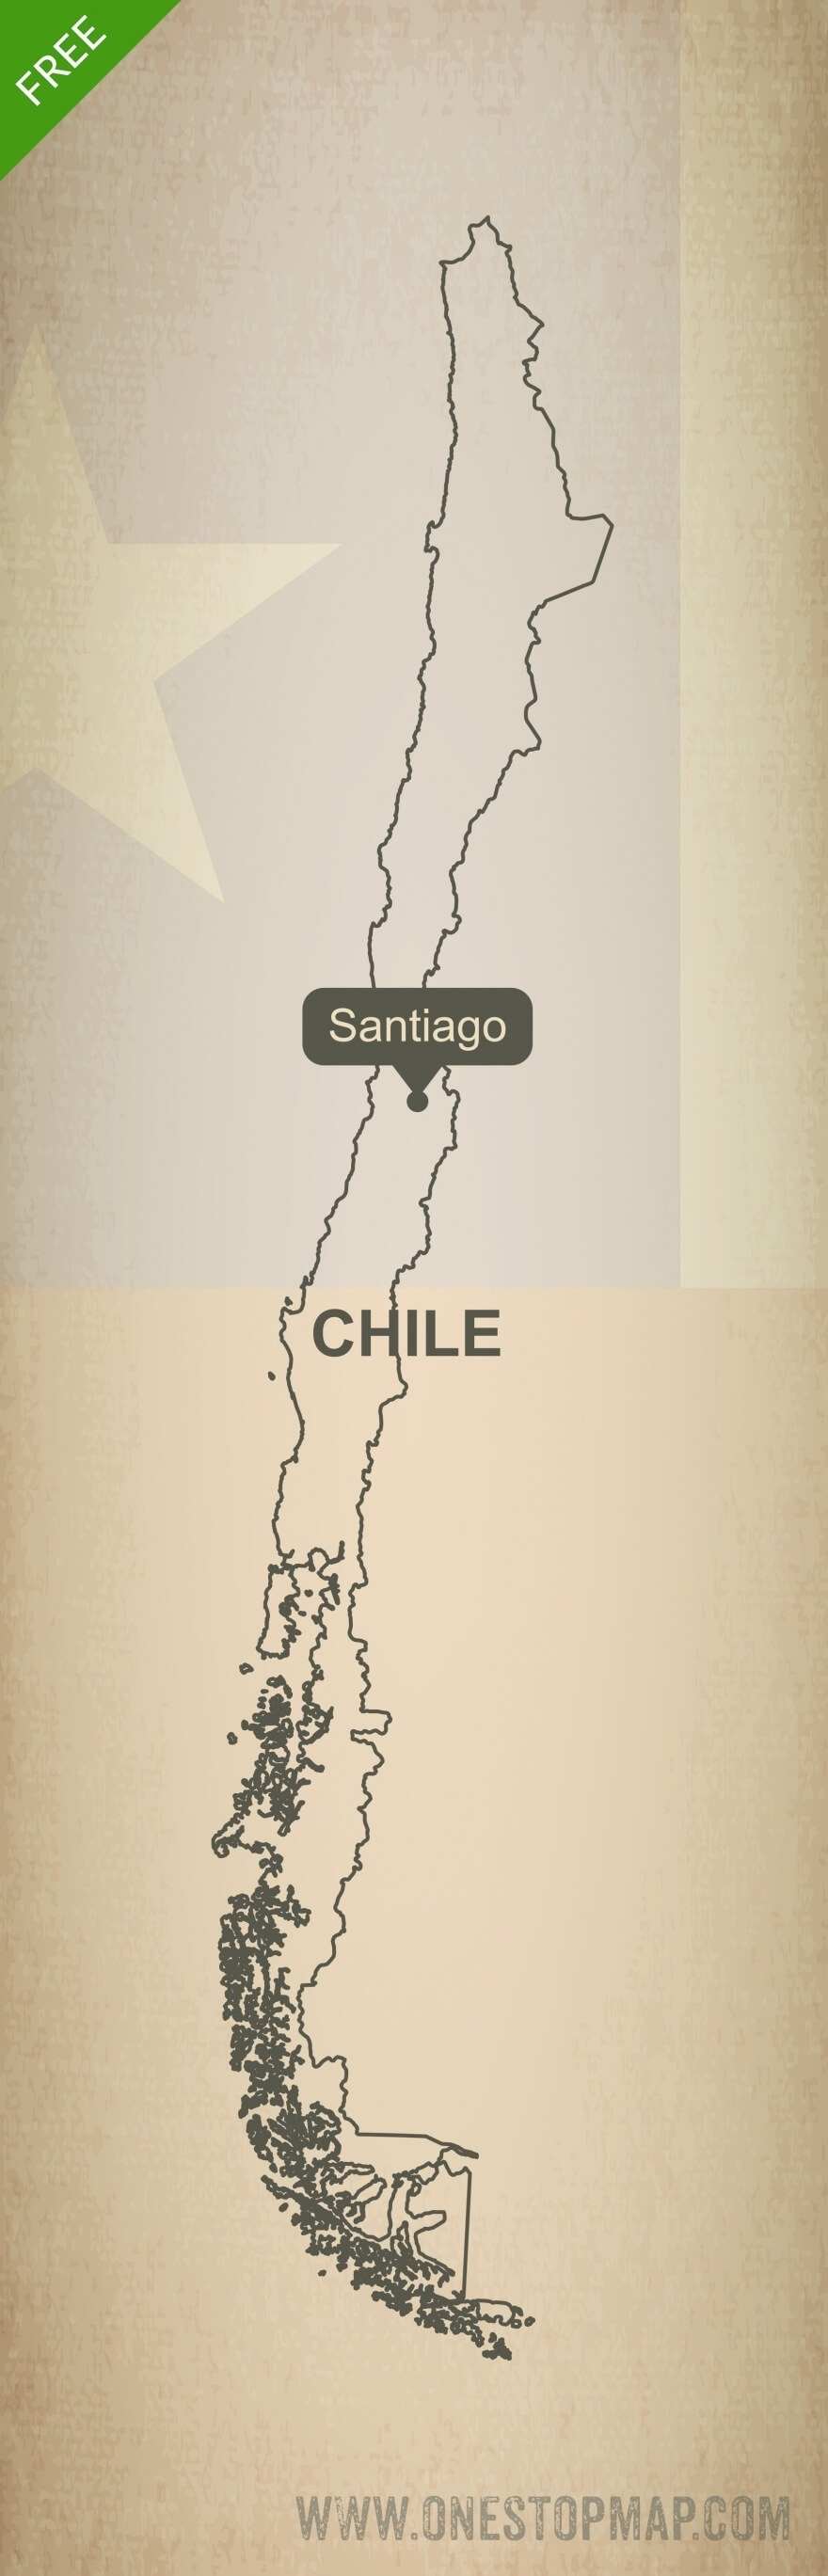 Free Vector Map Of Chile Outline One Stop Map - Map of chile